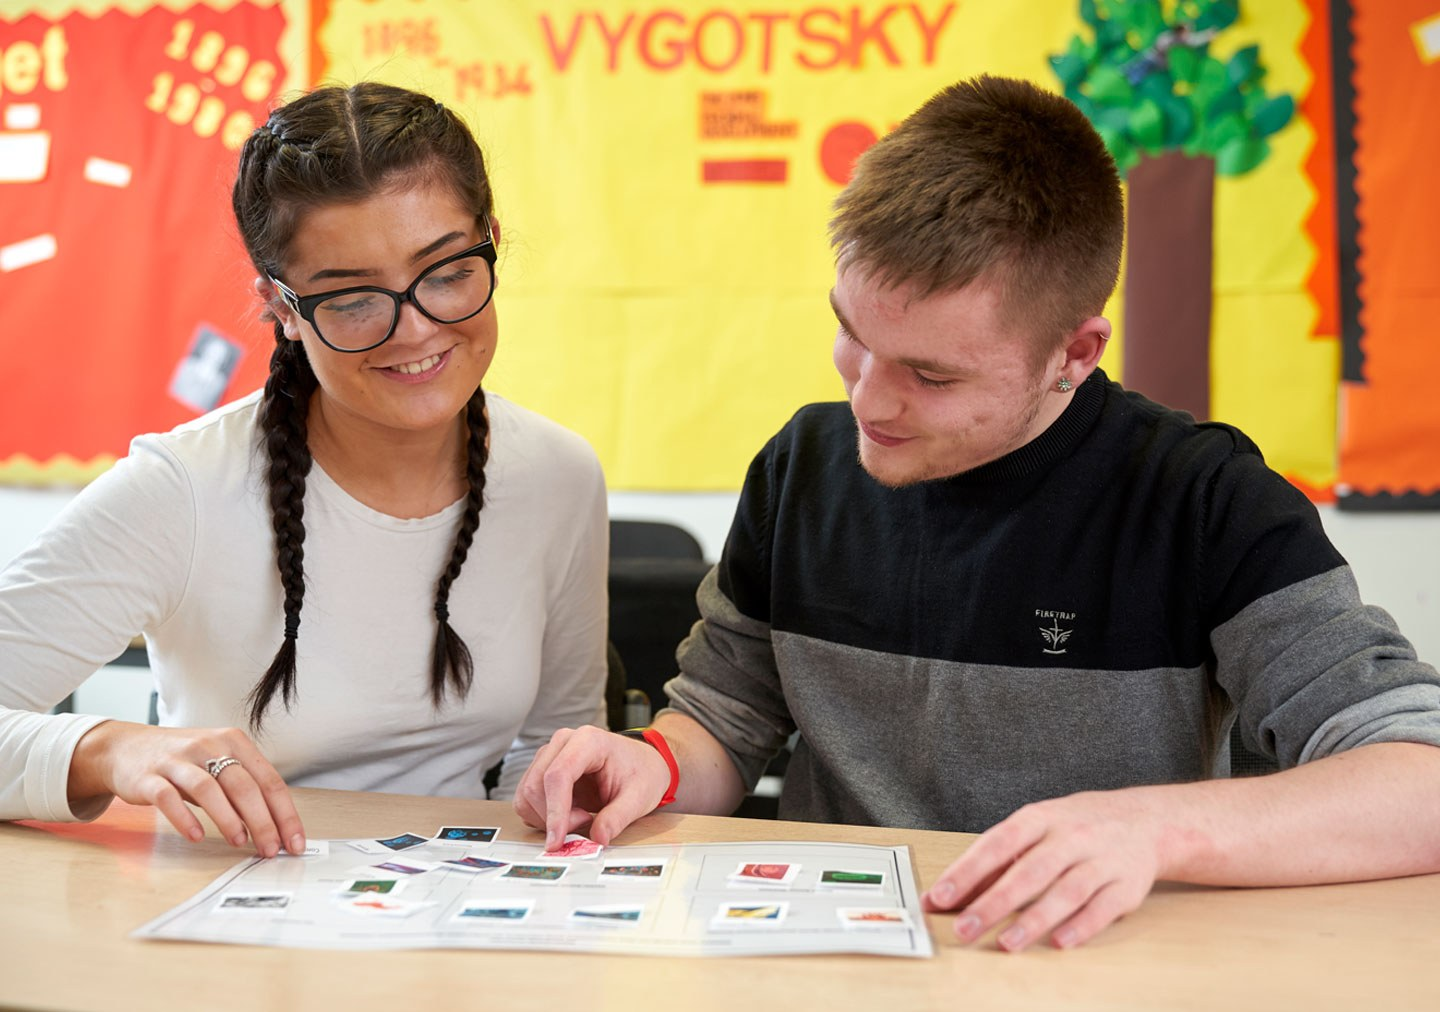 Two students working on an activity together